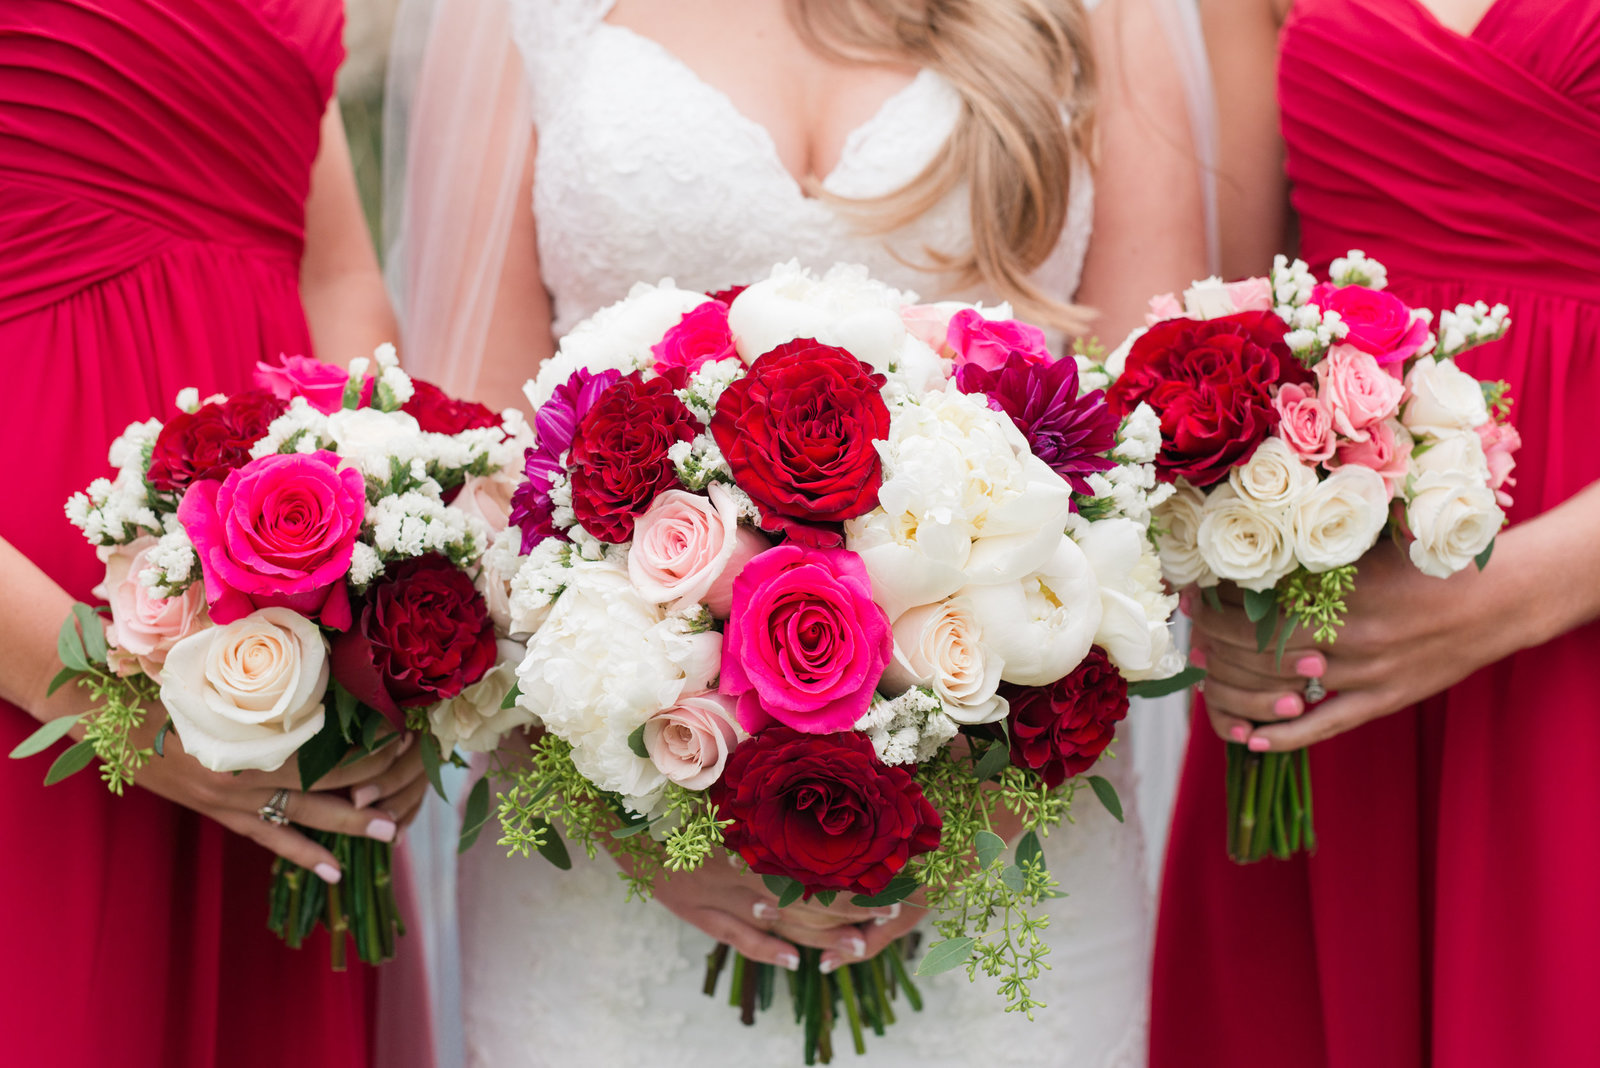 Bridesmaids in Cranberry dresses show their pink bouquets